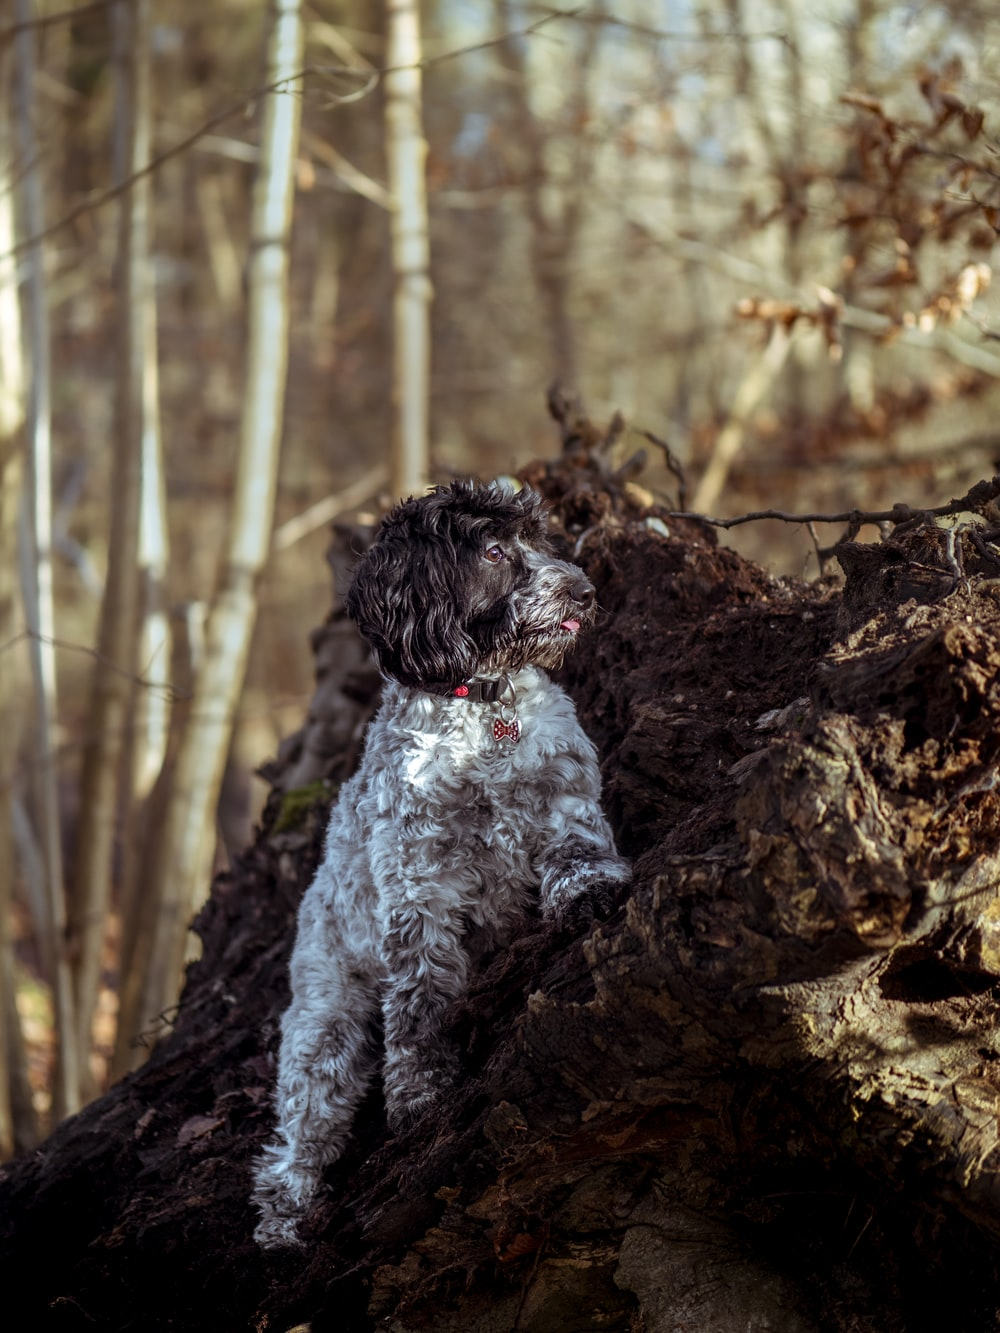 black and white poodle puppy on brown tree trunk during daytime